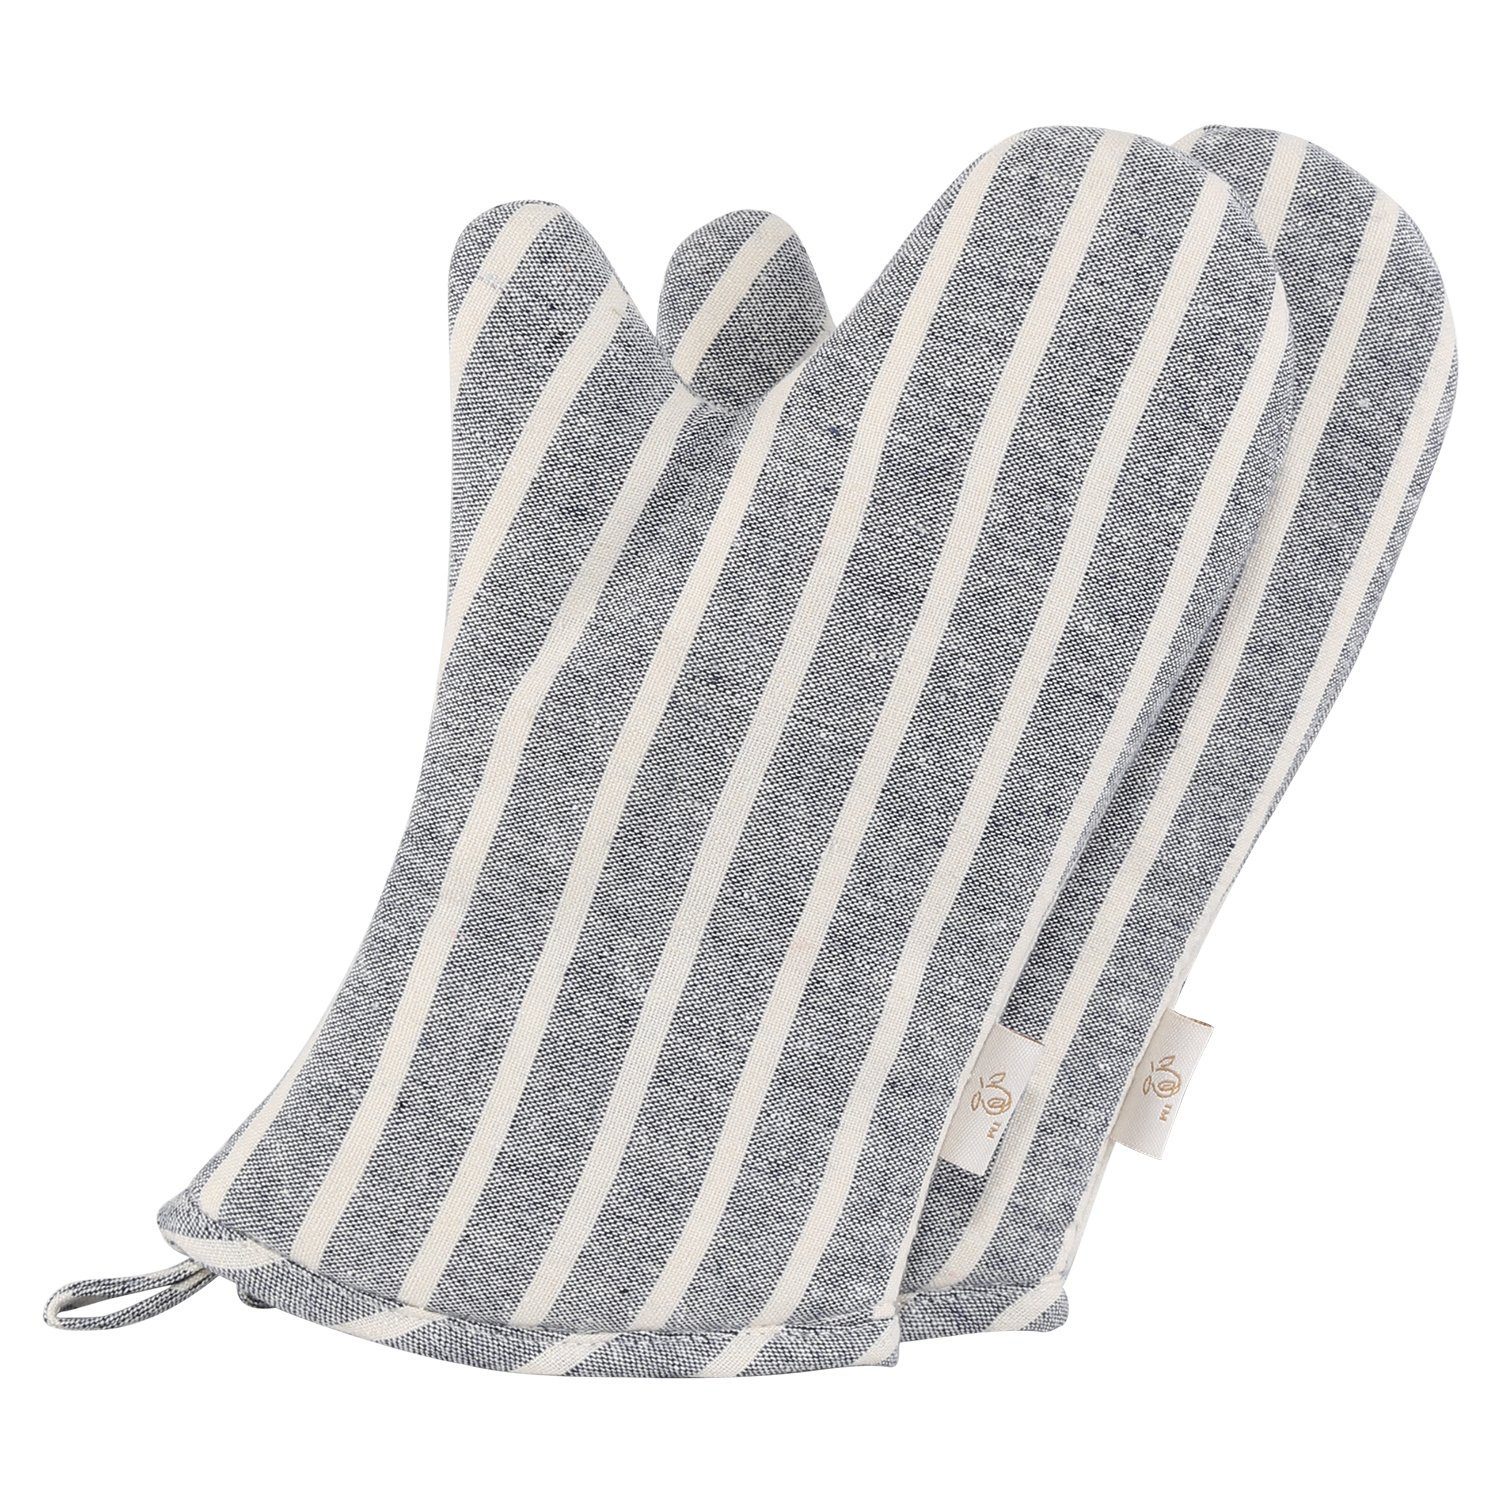 NEOVIVA Denim Quilted Heat Resistant Oven Mitt for Children, Set of 2, Chalk Striped Wild Dove